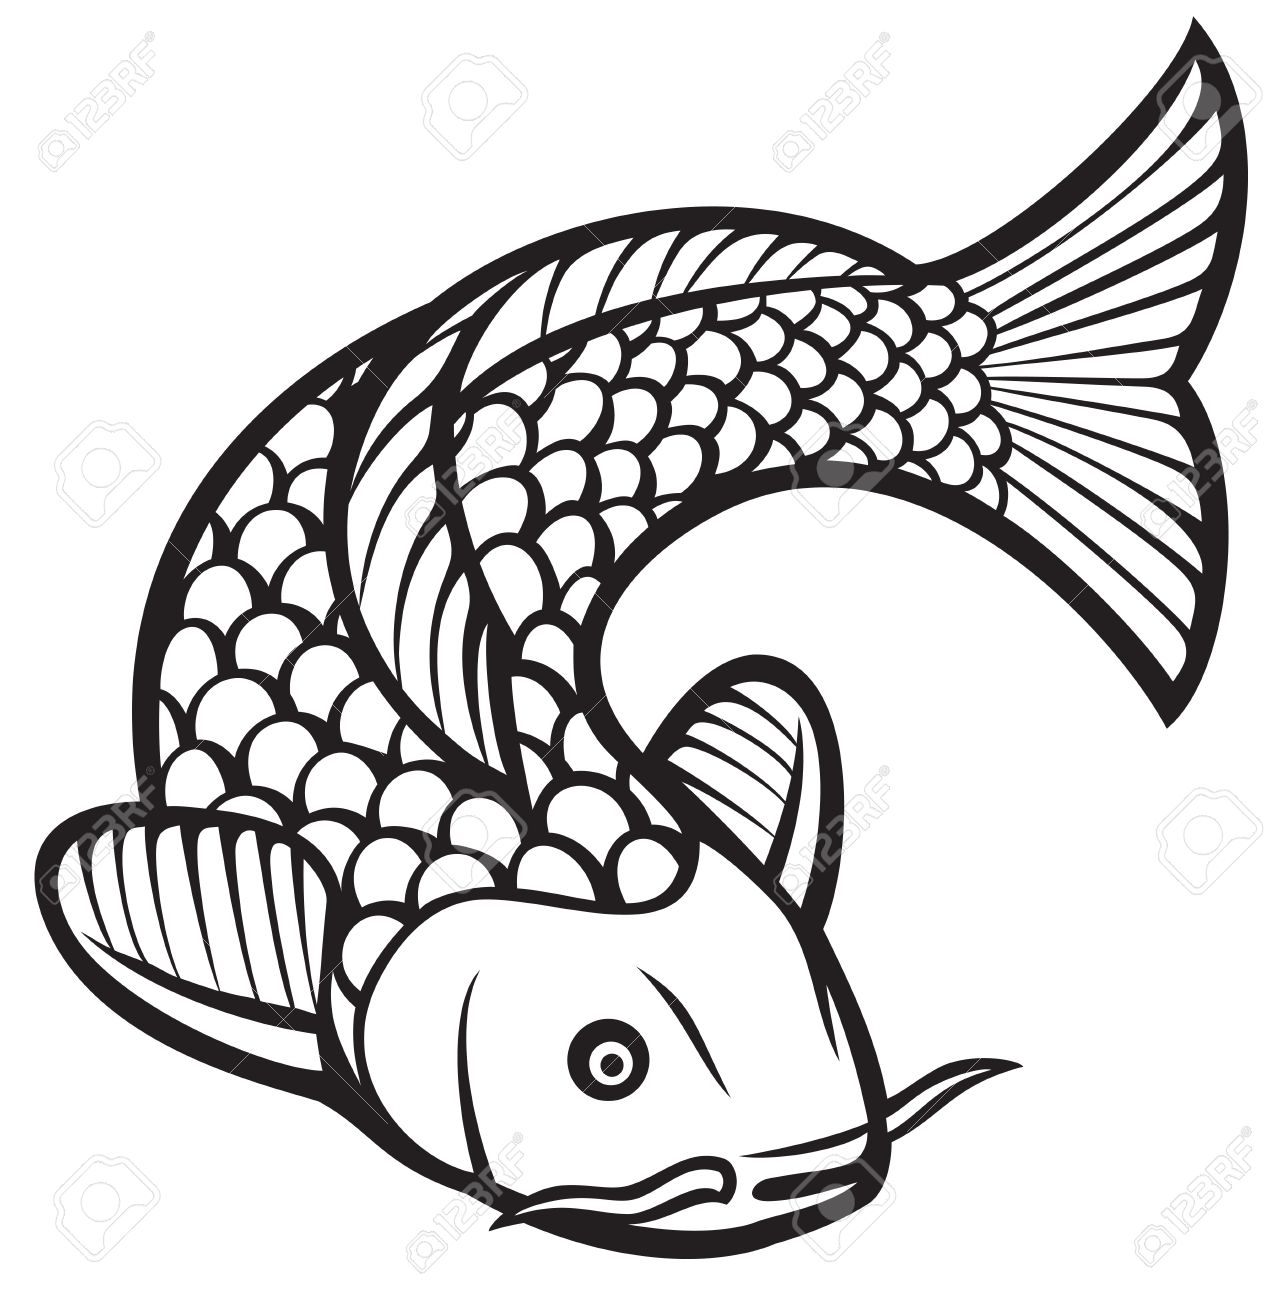 koi fish vector illustration of a japanese or chinese inspired rh 123rf com chinese koi fish vector japanese koi fish vector free